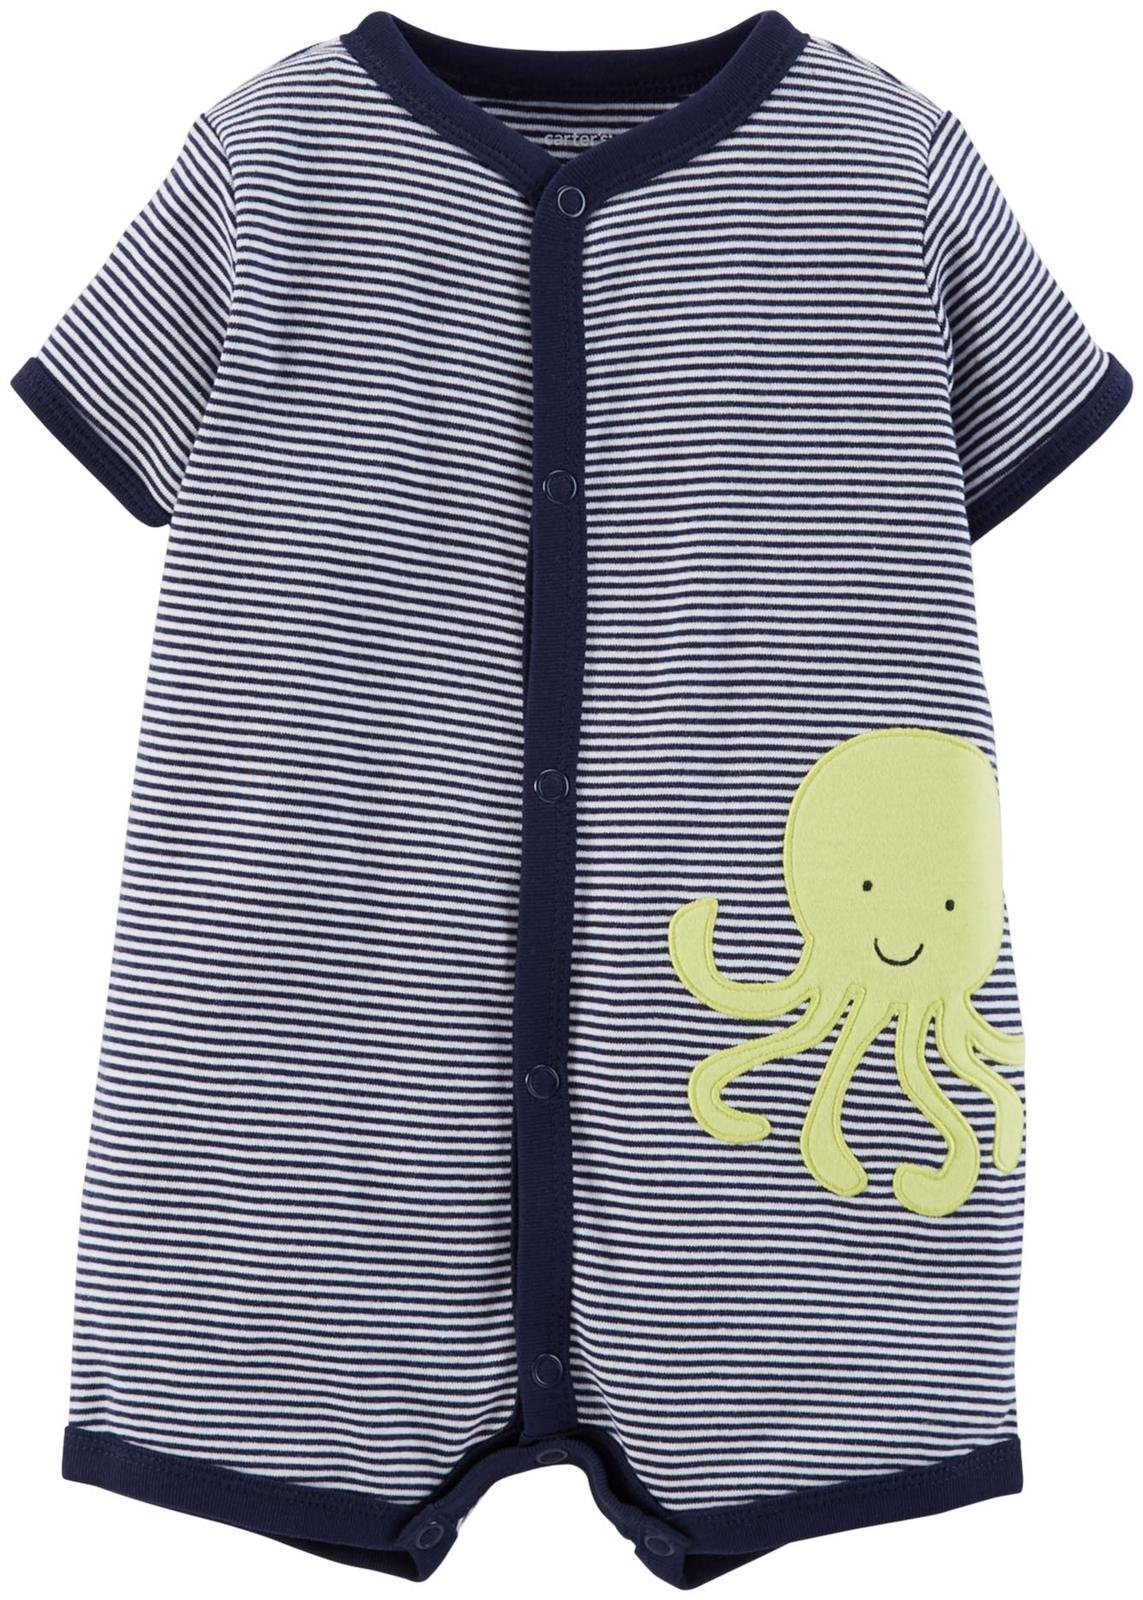 Carters Baby Boys Striped Romper product image